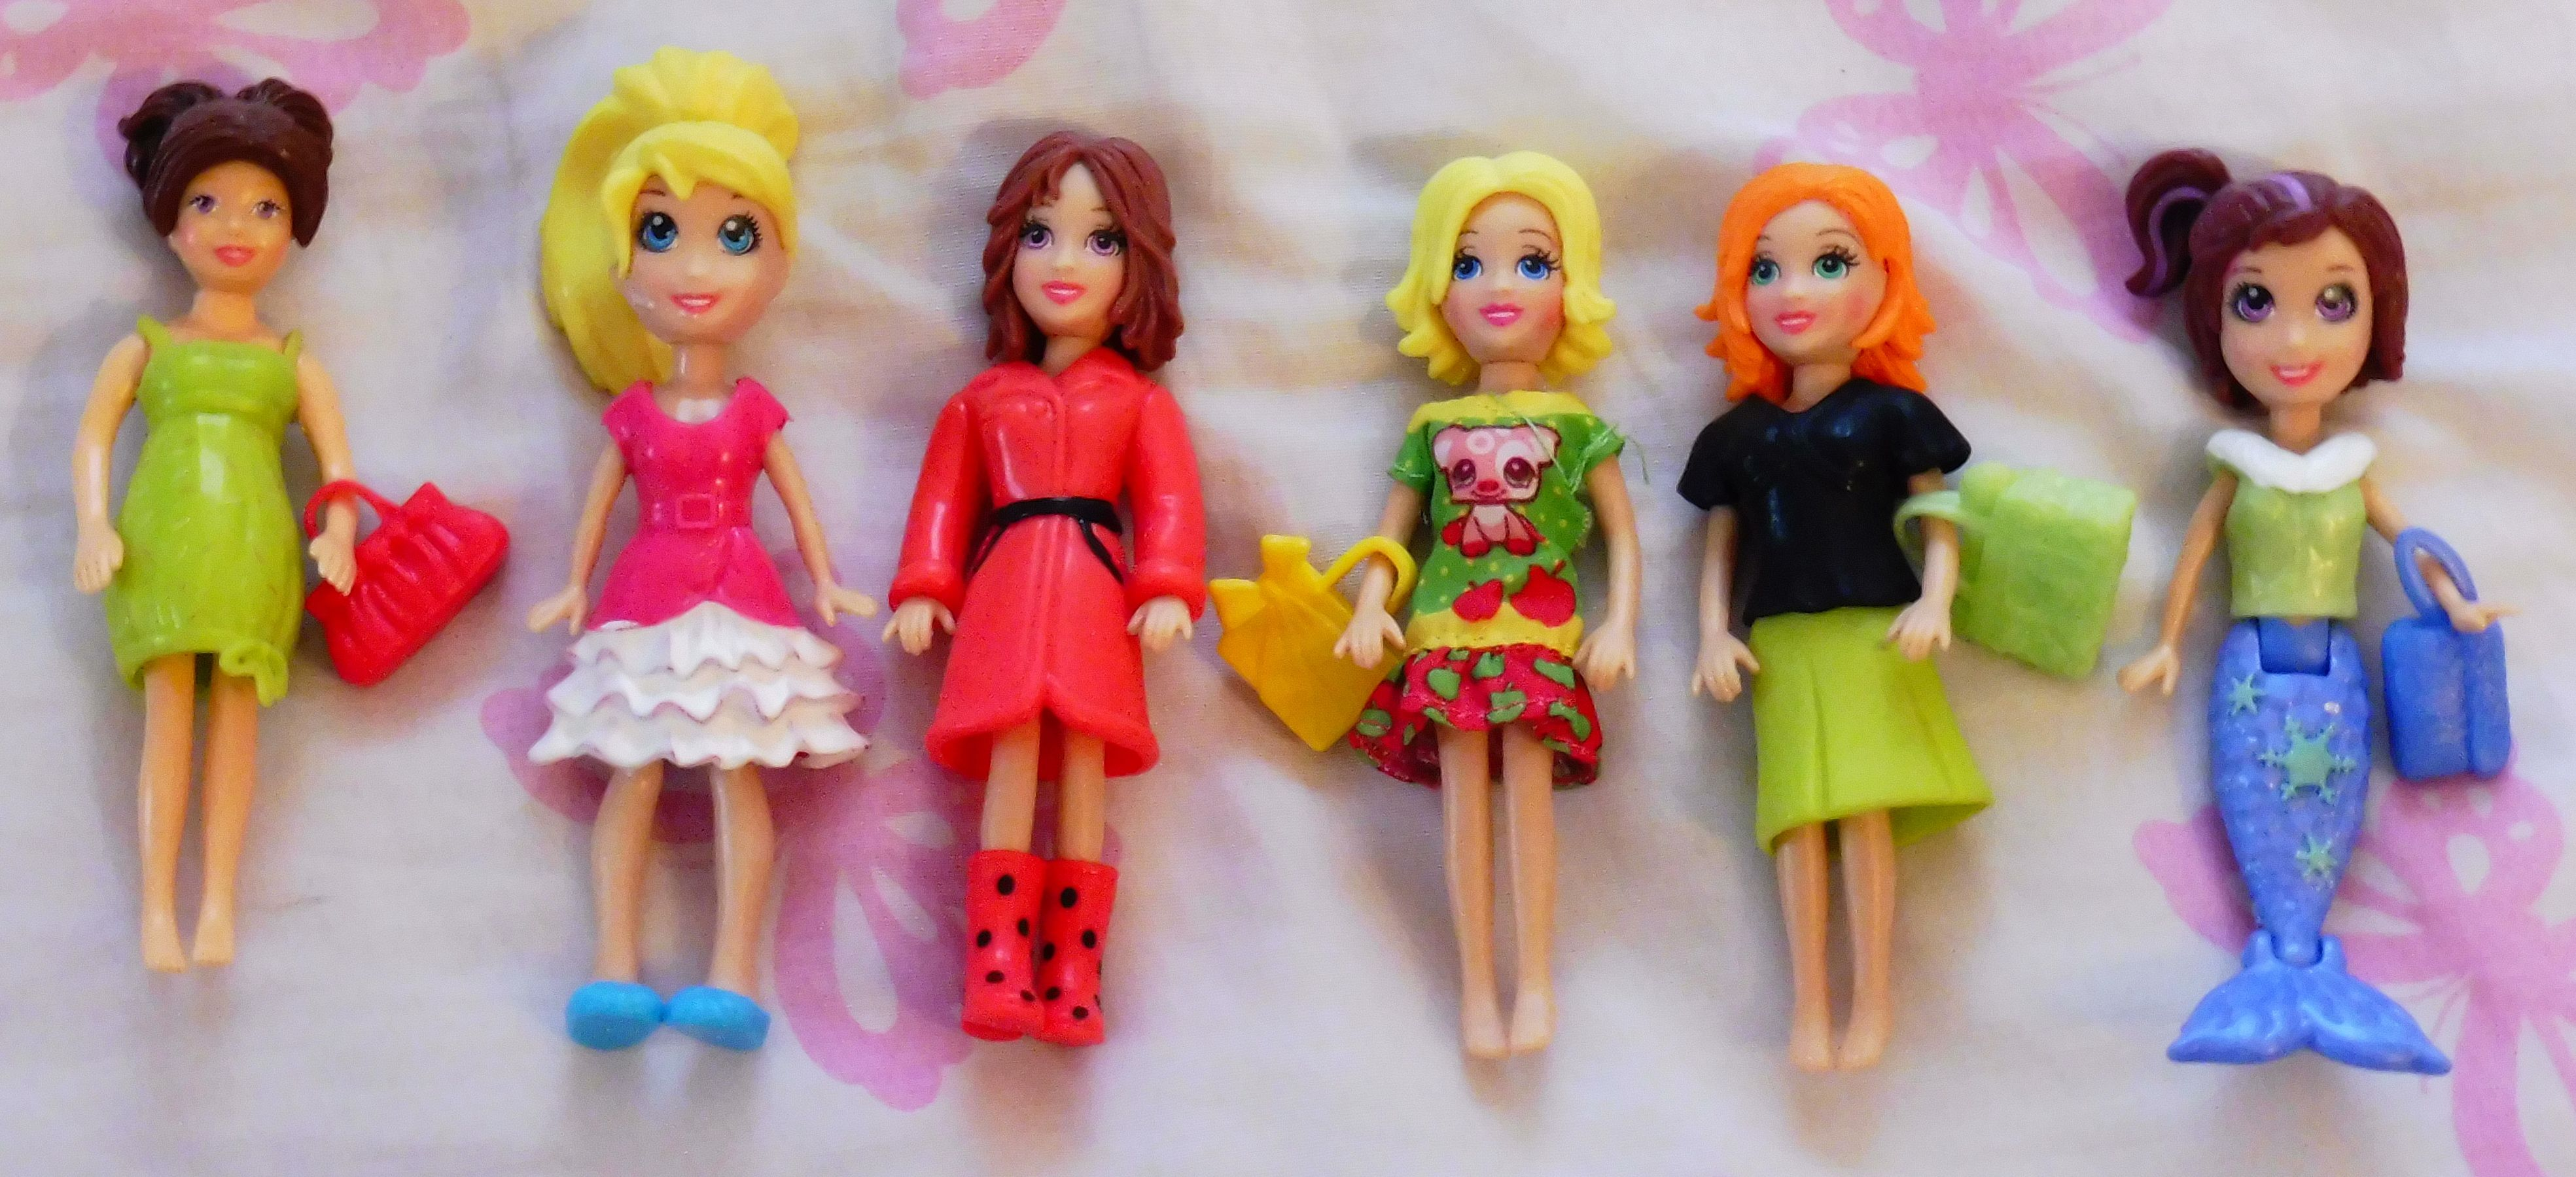 Here are my Polly Pockets. :)